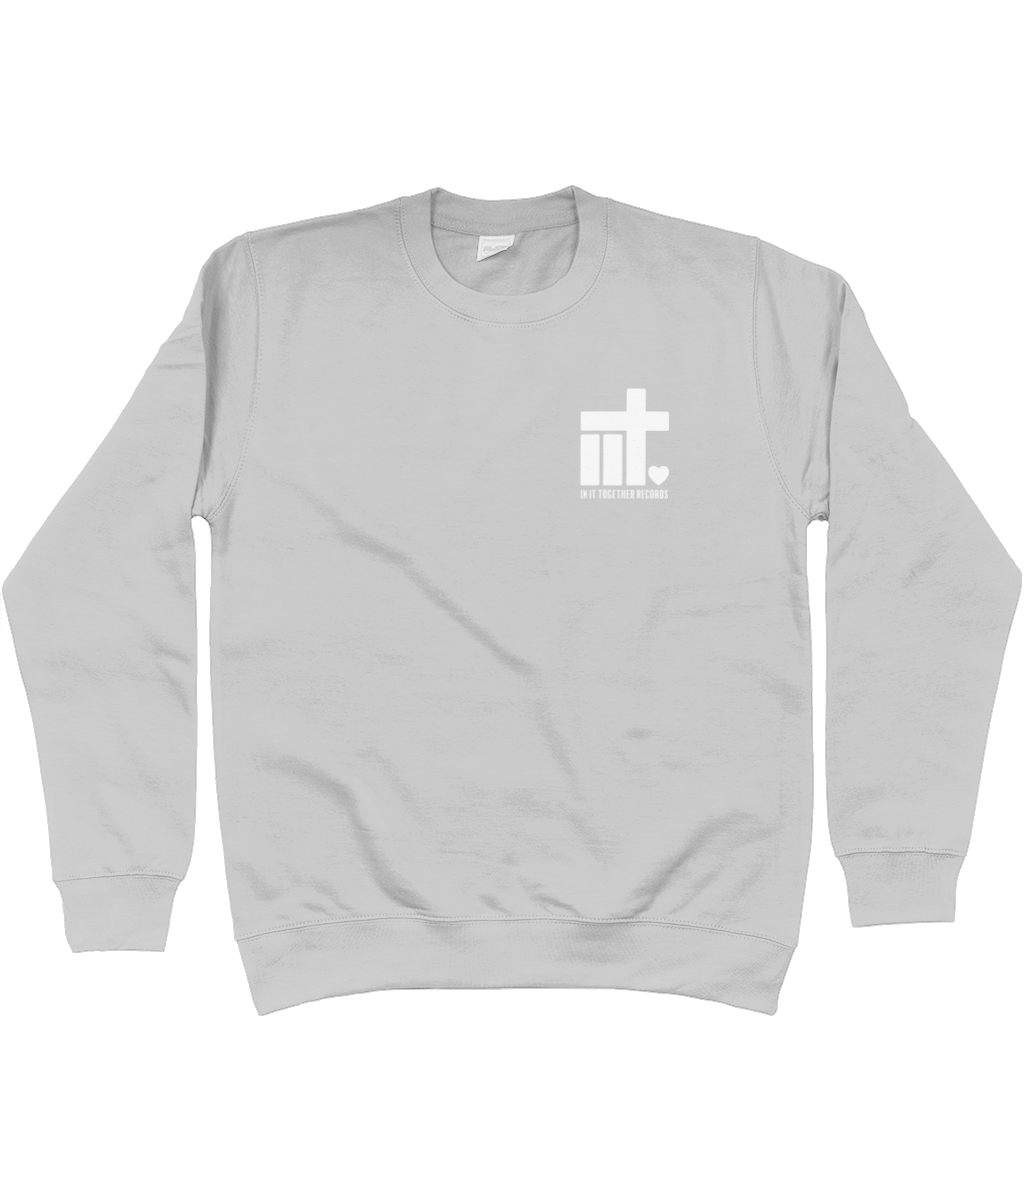 Sweatshirt IIT Small